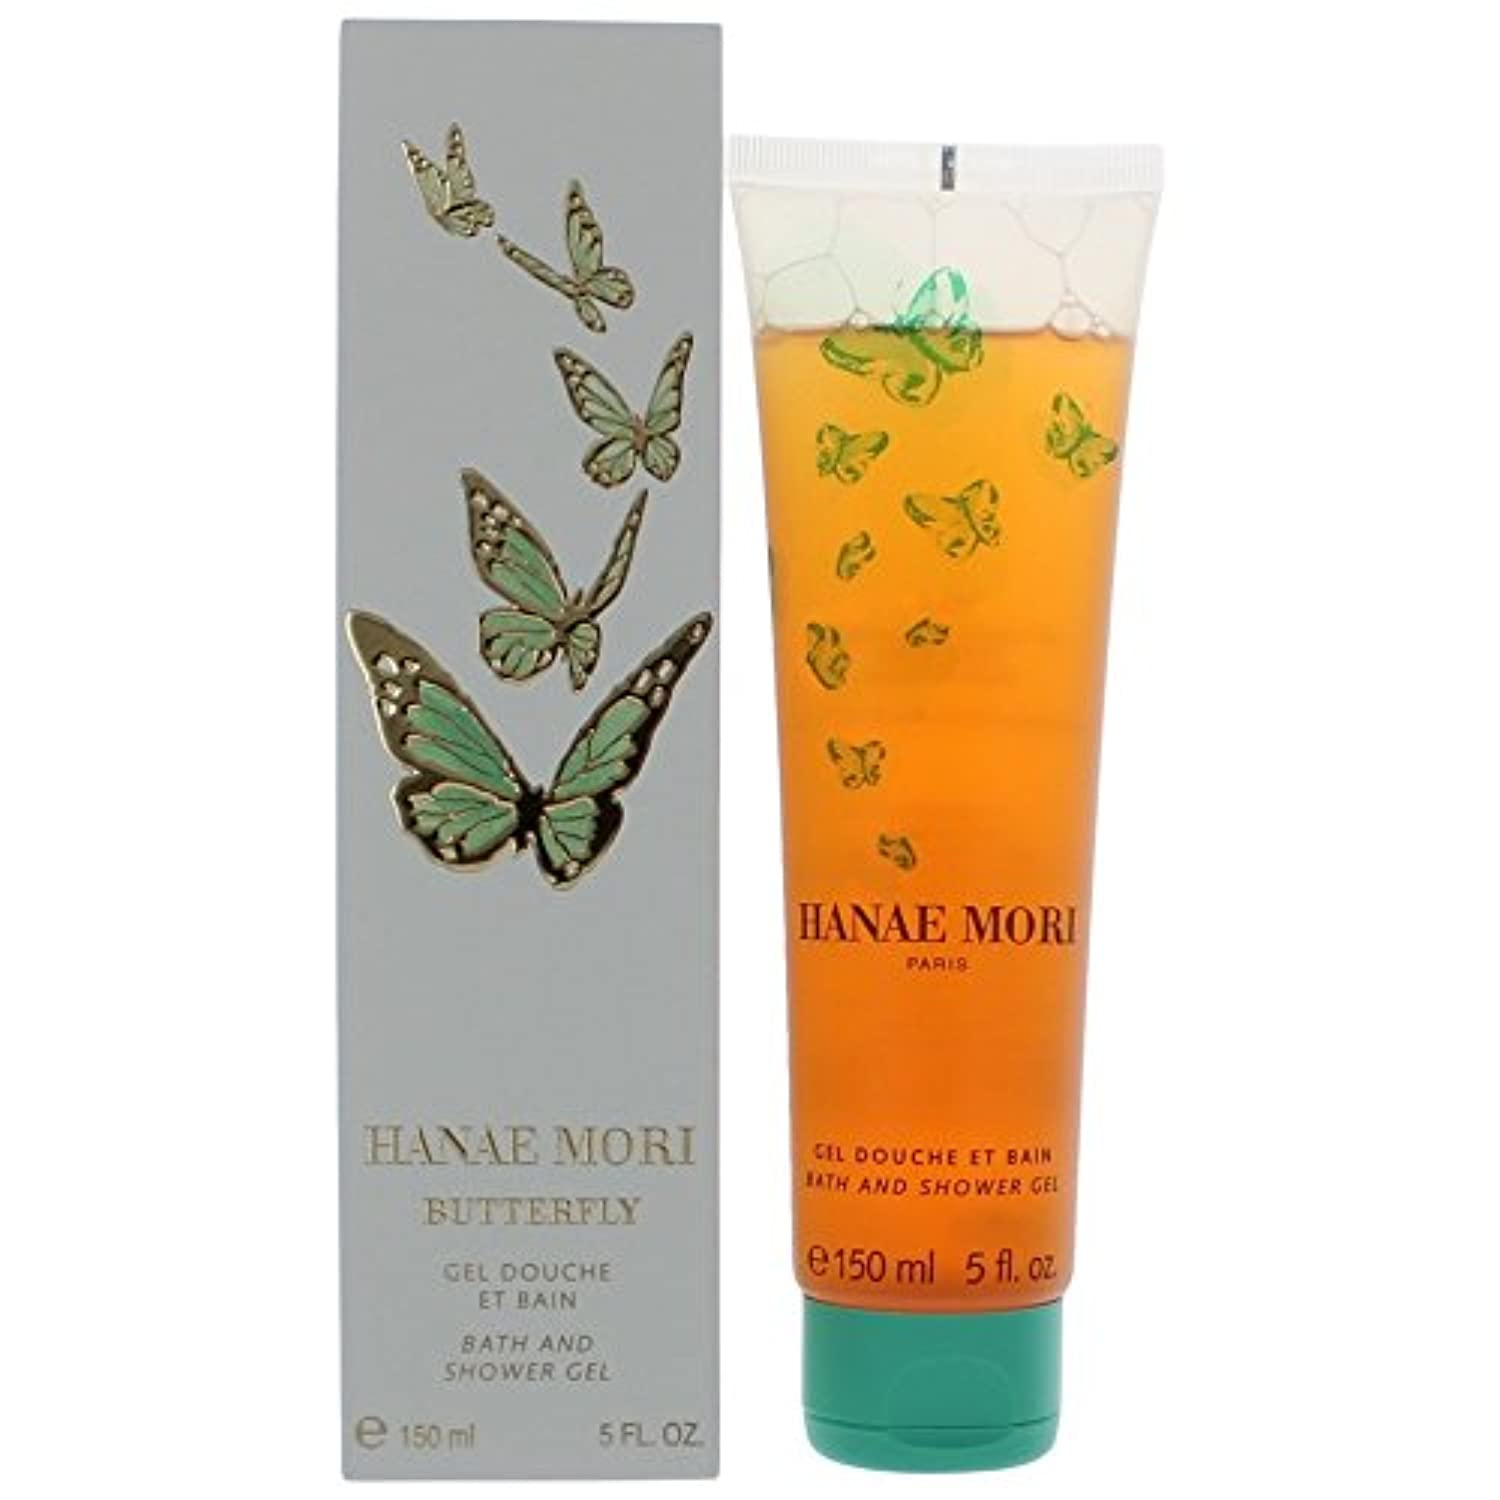 背の高い検索概念Hanae Mori By Hanae Mori For Women. Shower Gel 5 Ounces by Hanae Mori